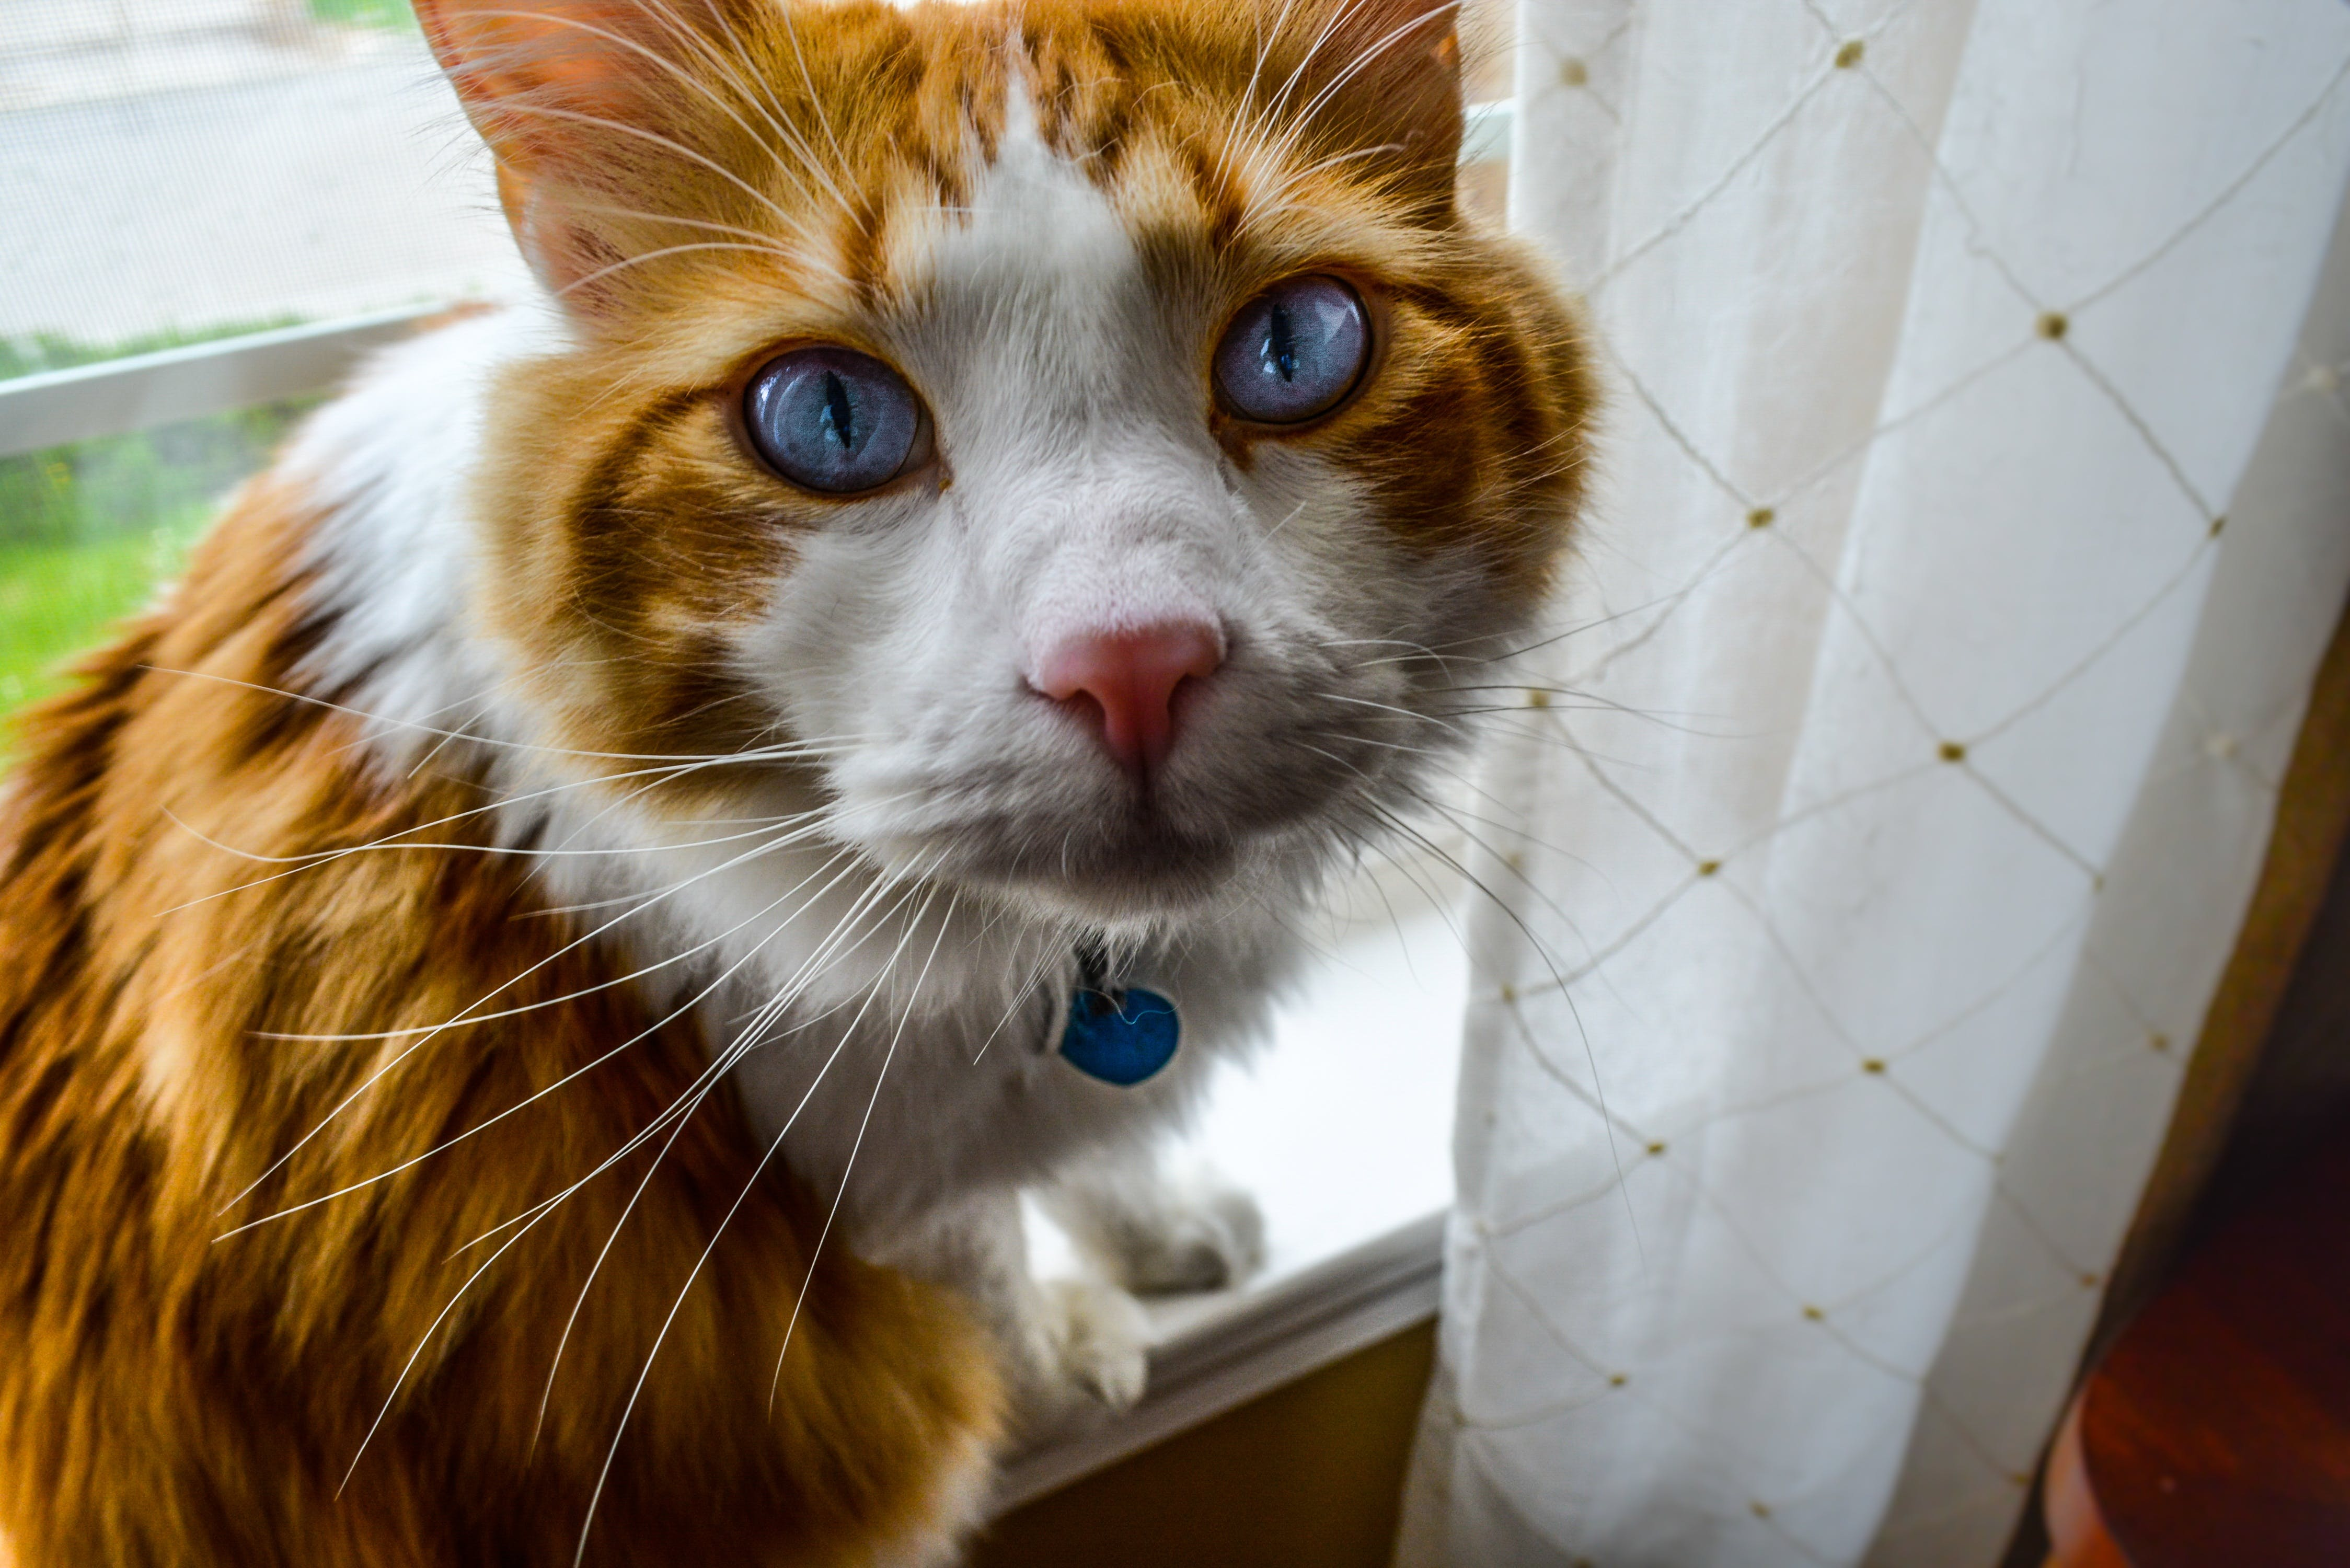 Medium-haired Orange and White Cat